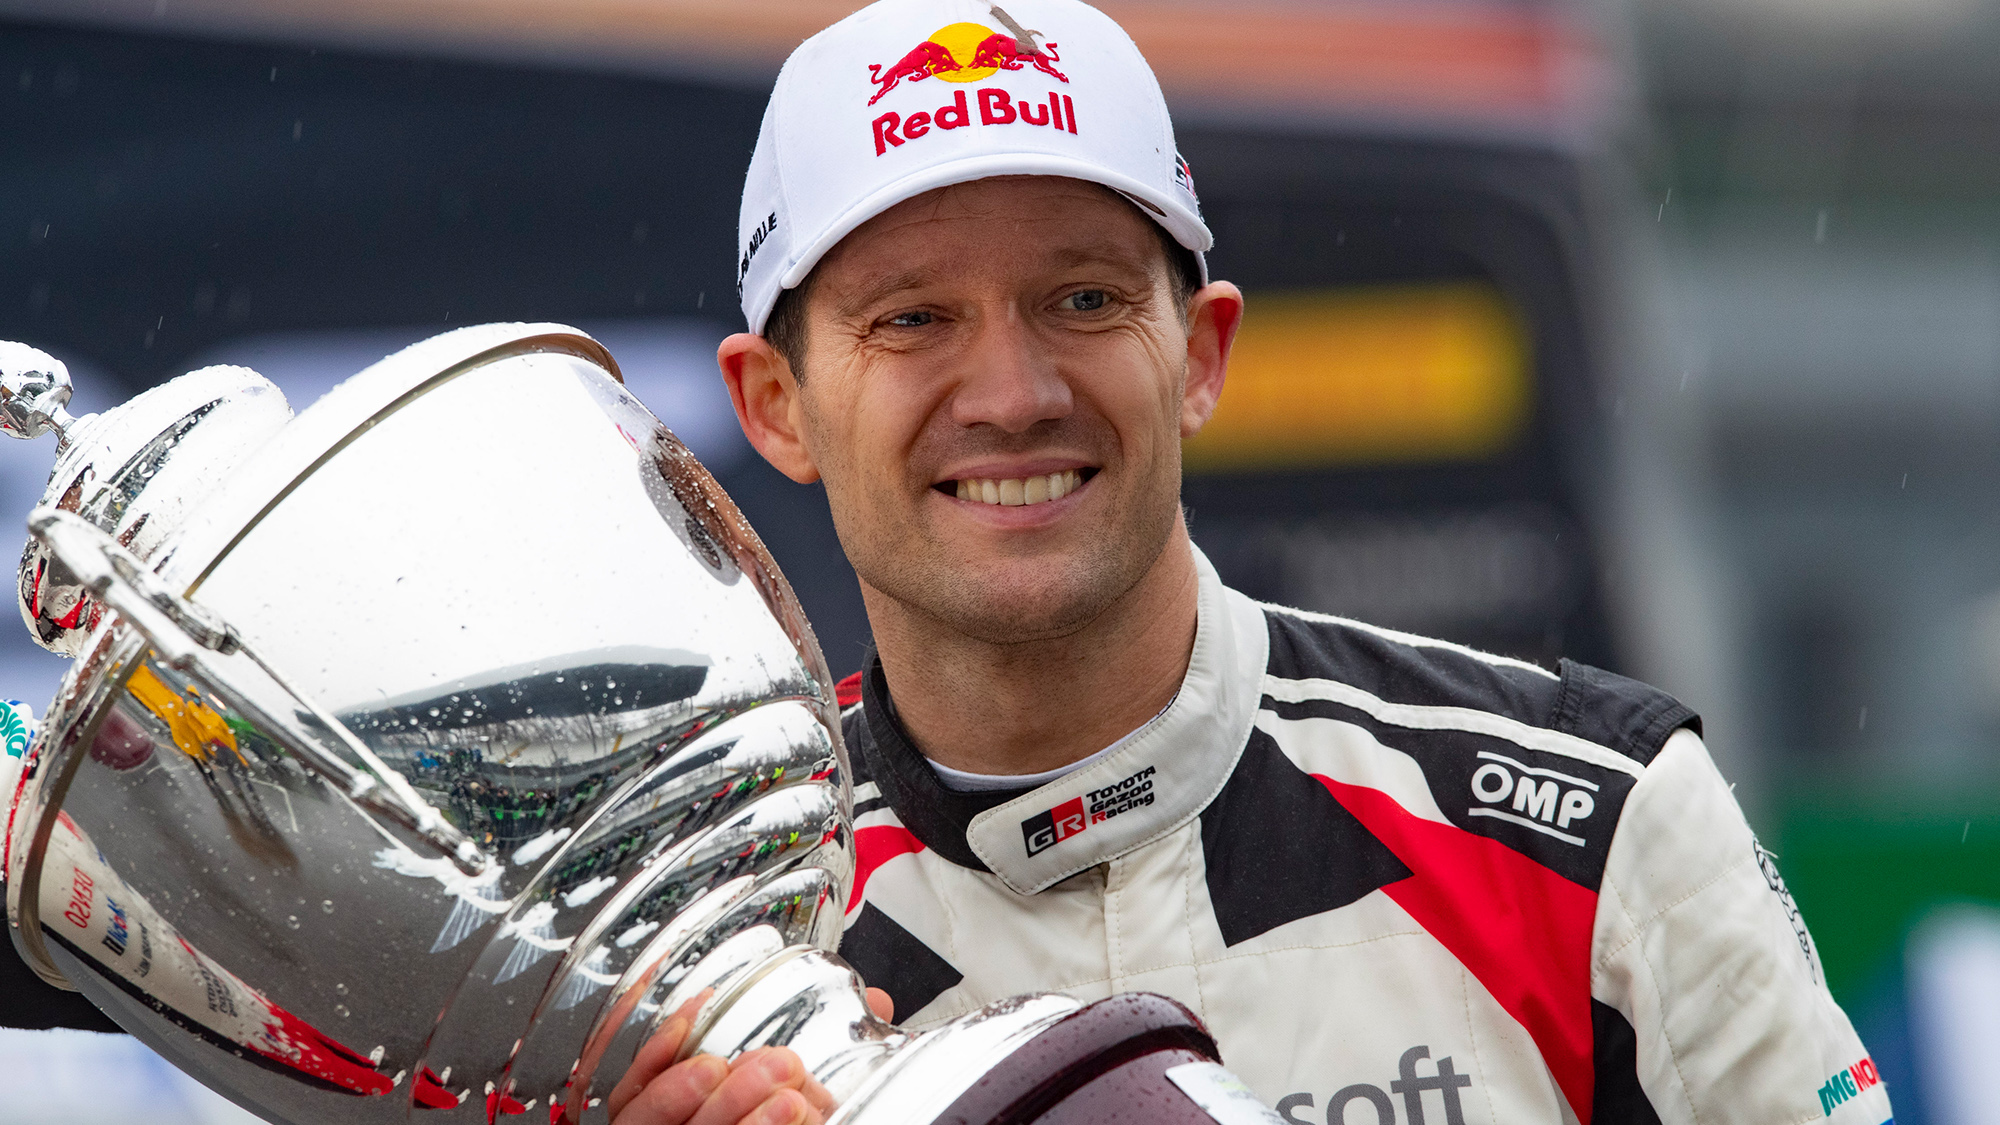 Sebastien Ogier with his trophy after winning the 2021 Monte Carlo Rally